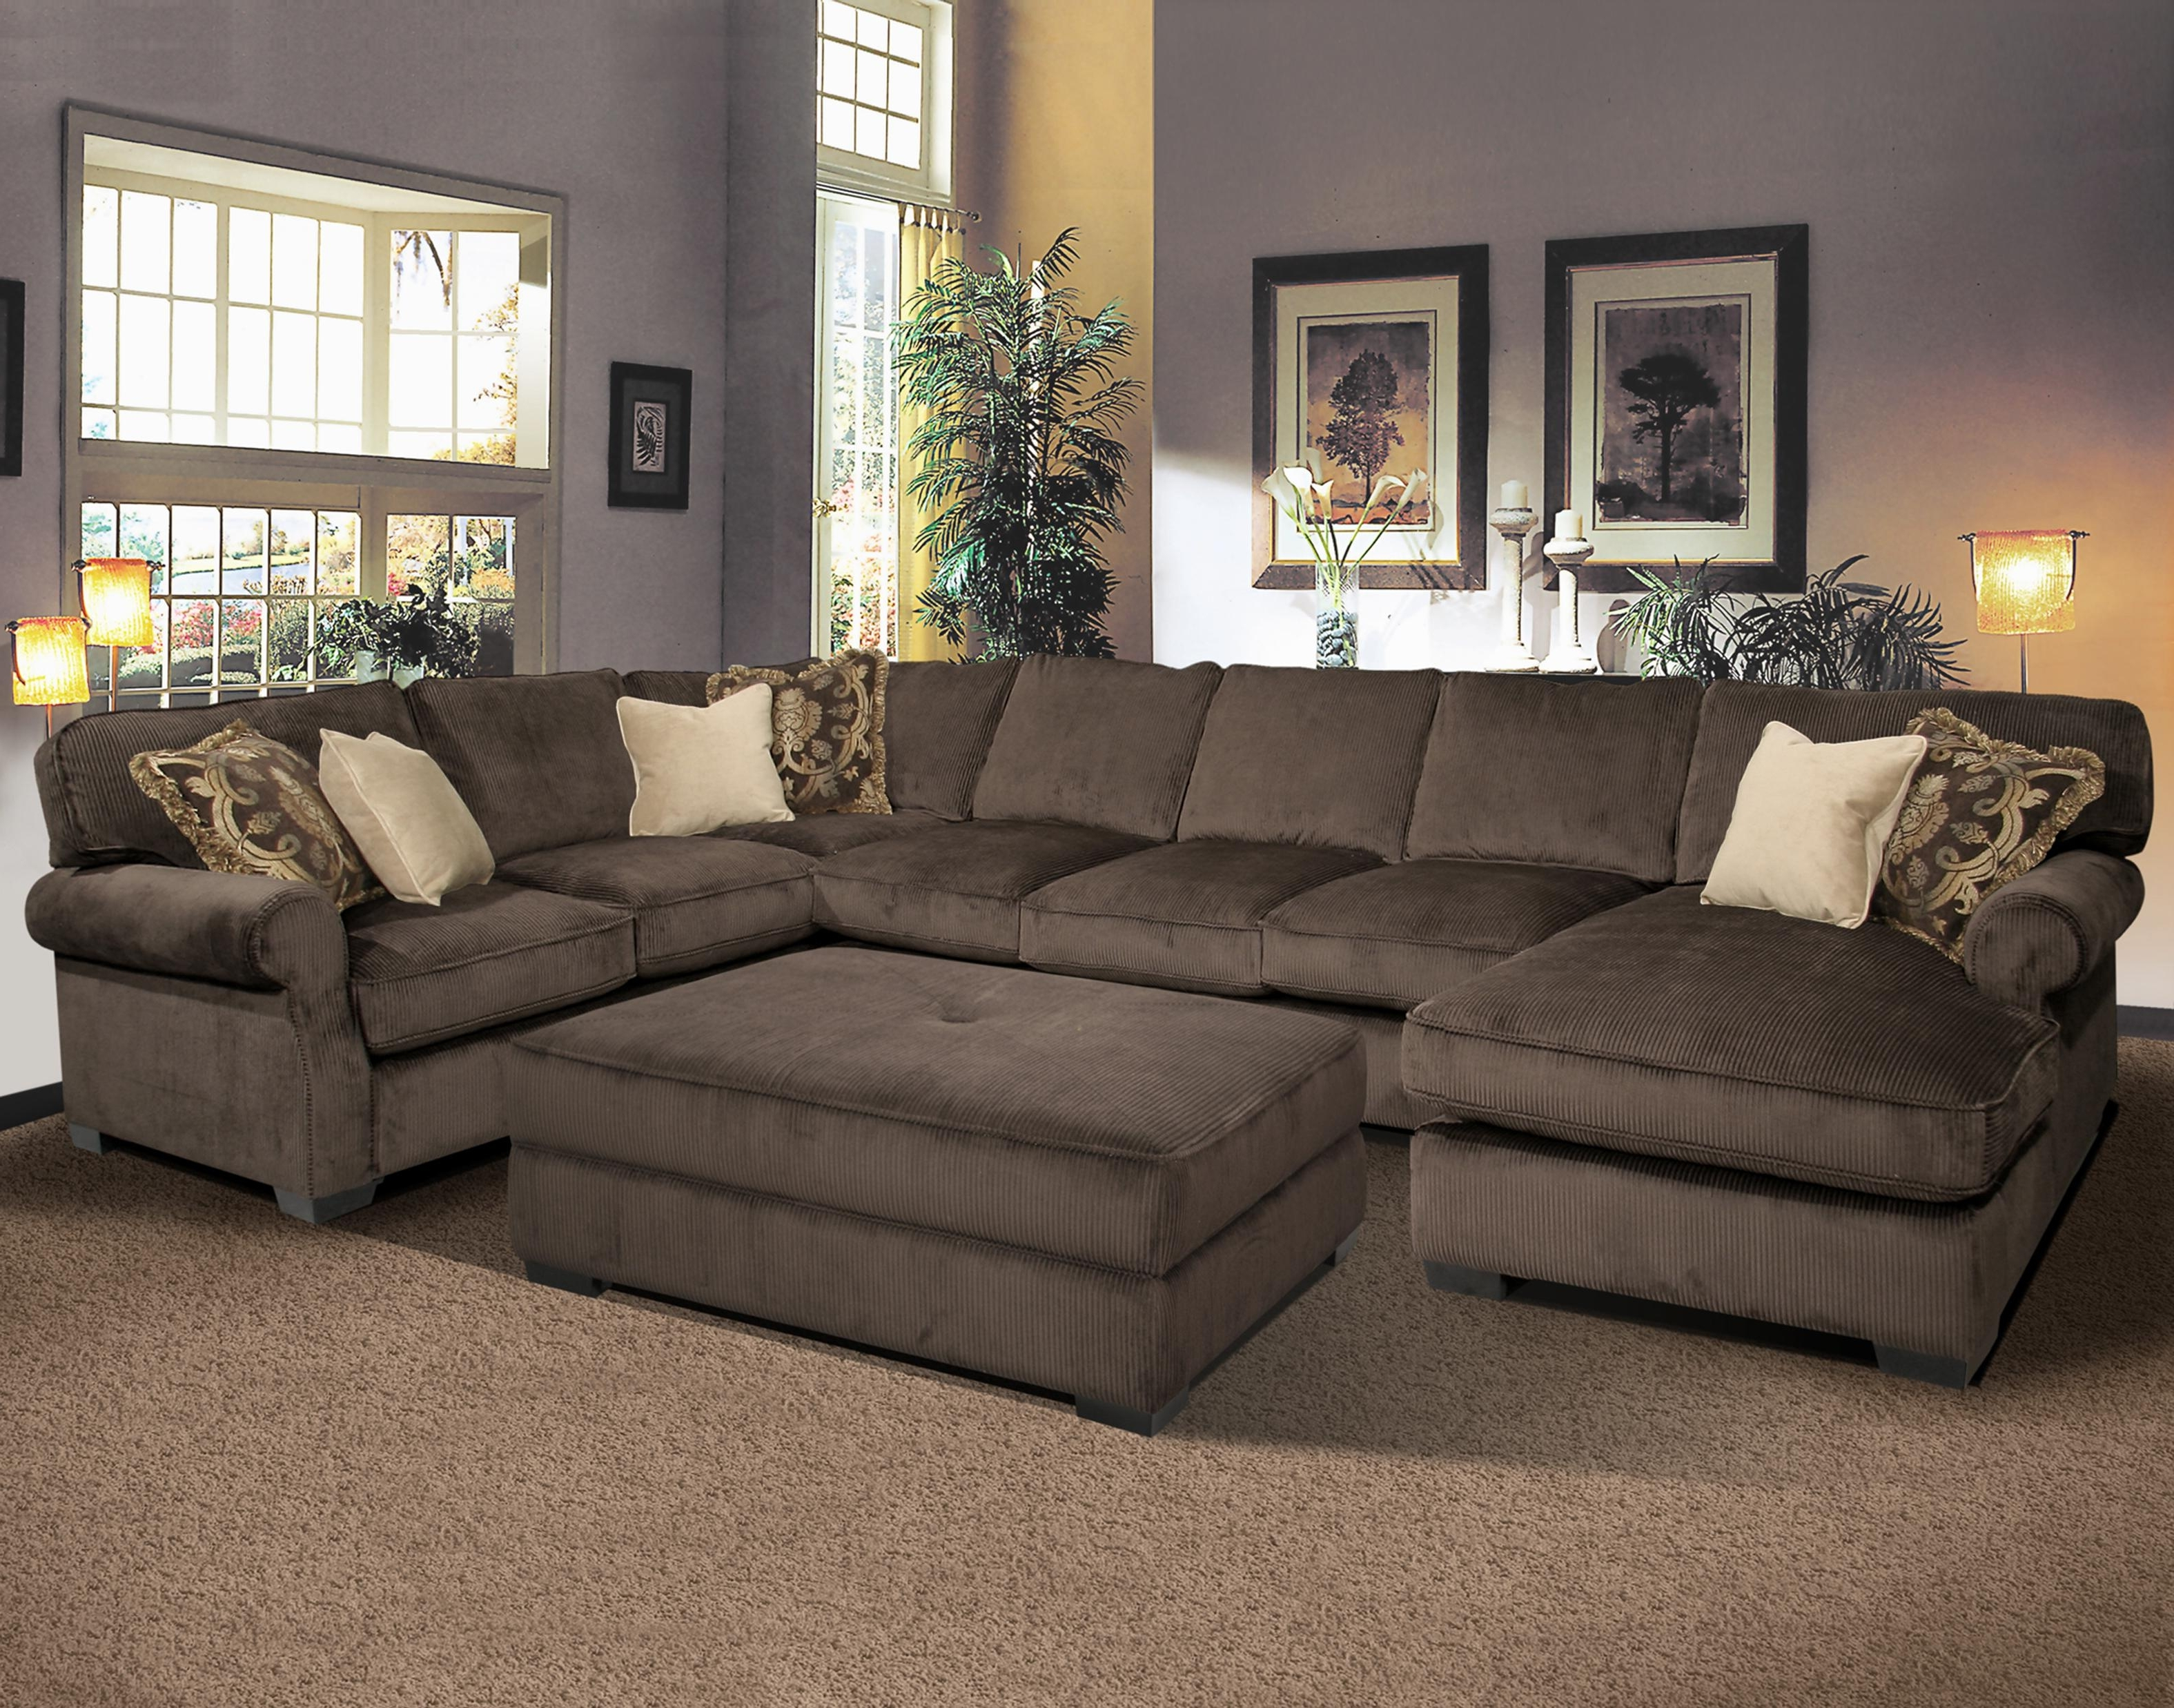 Awesome Comfy Sectional Sofas 26 For Sleeper Sectional Sofa For Throughout Most Recently Released Comfy Sectional Sofas (View 2 of 20)